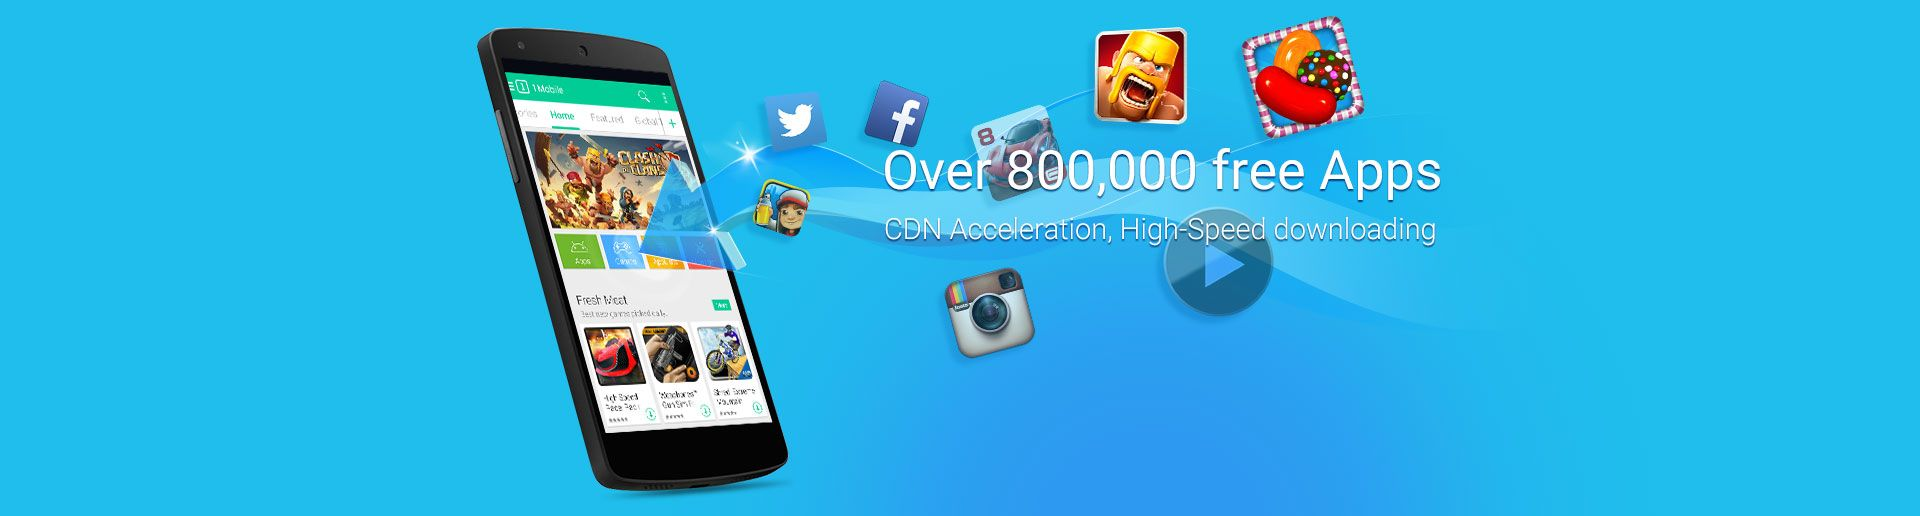 Over 800,000 free apps for direct download to your phone  -1Mobile